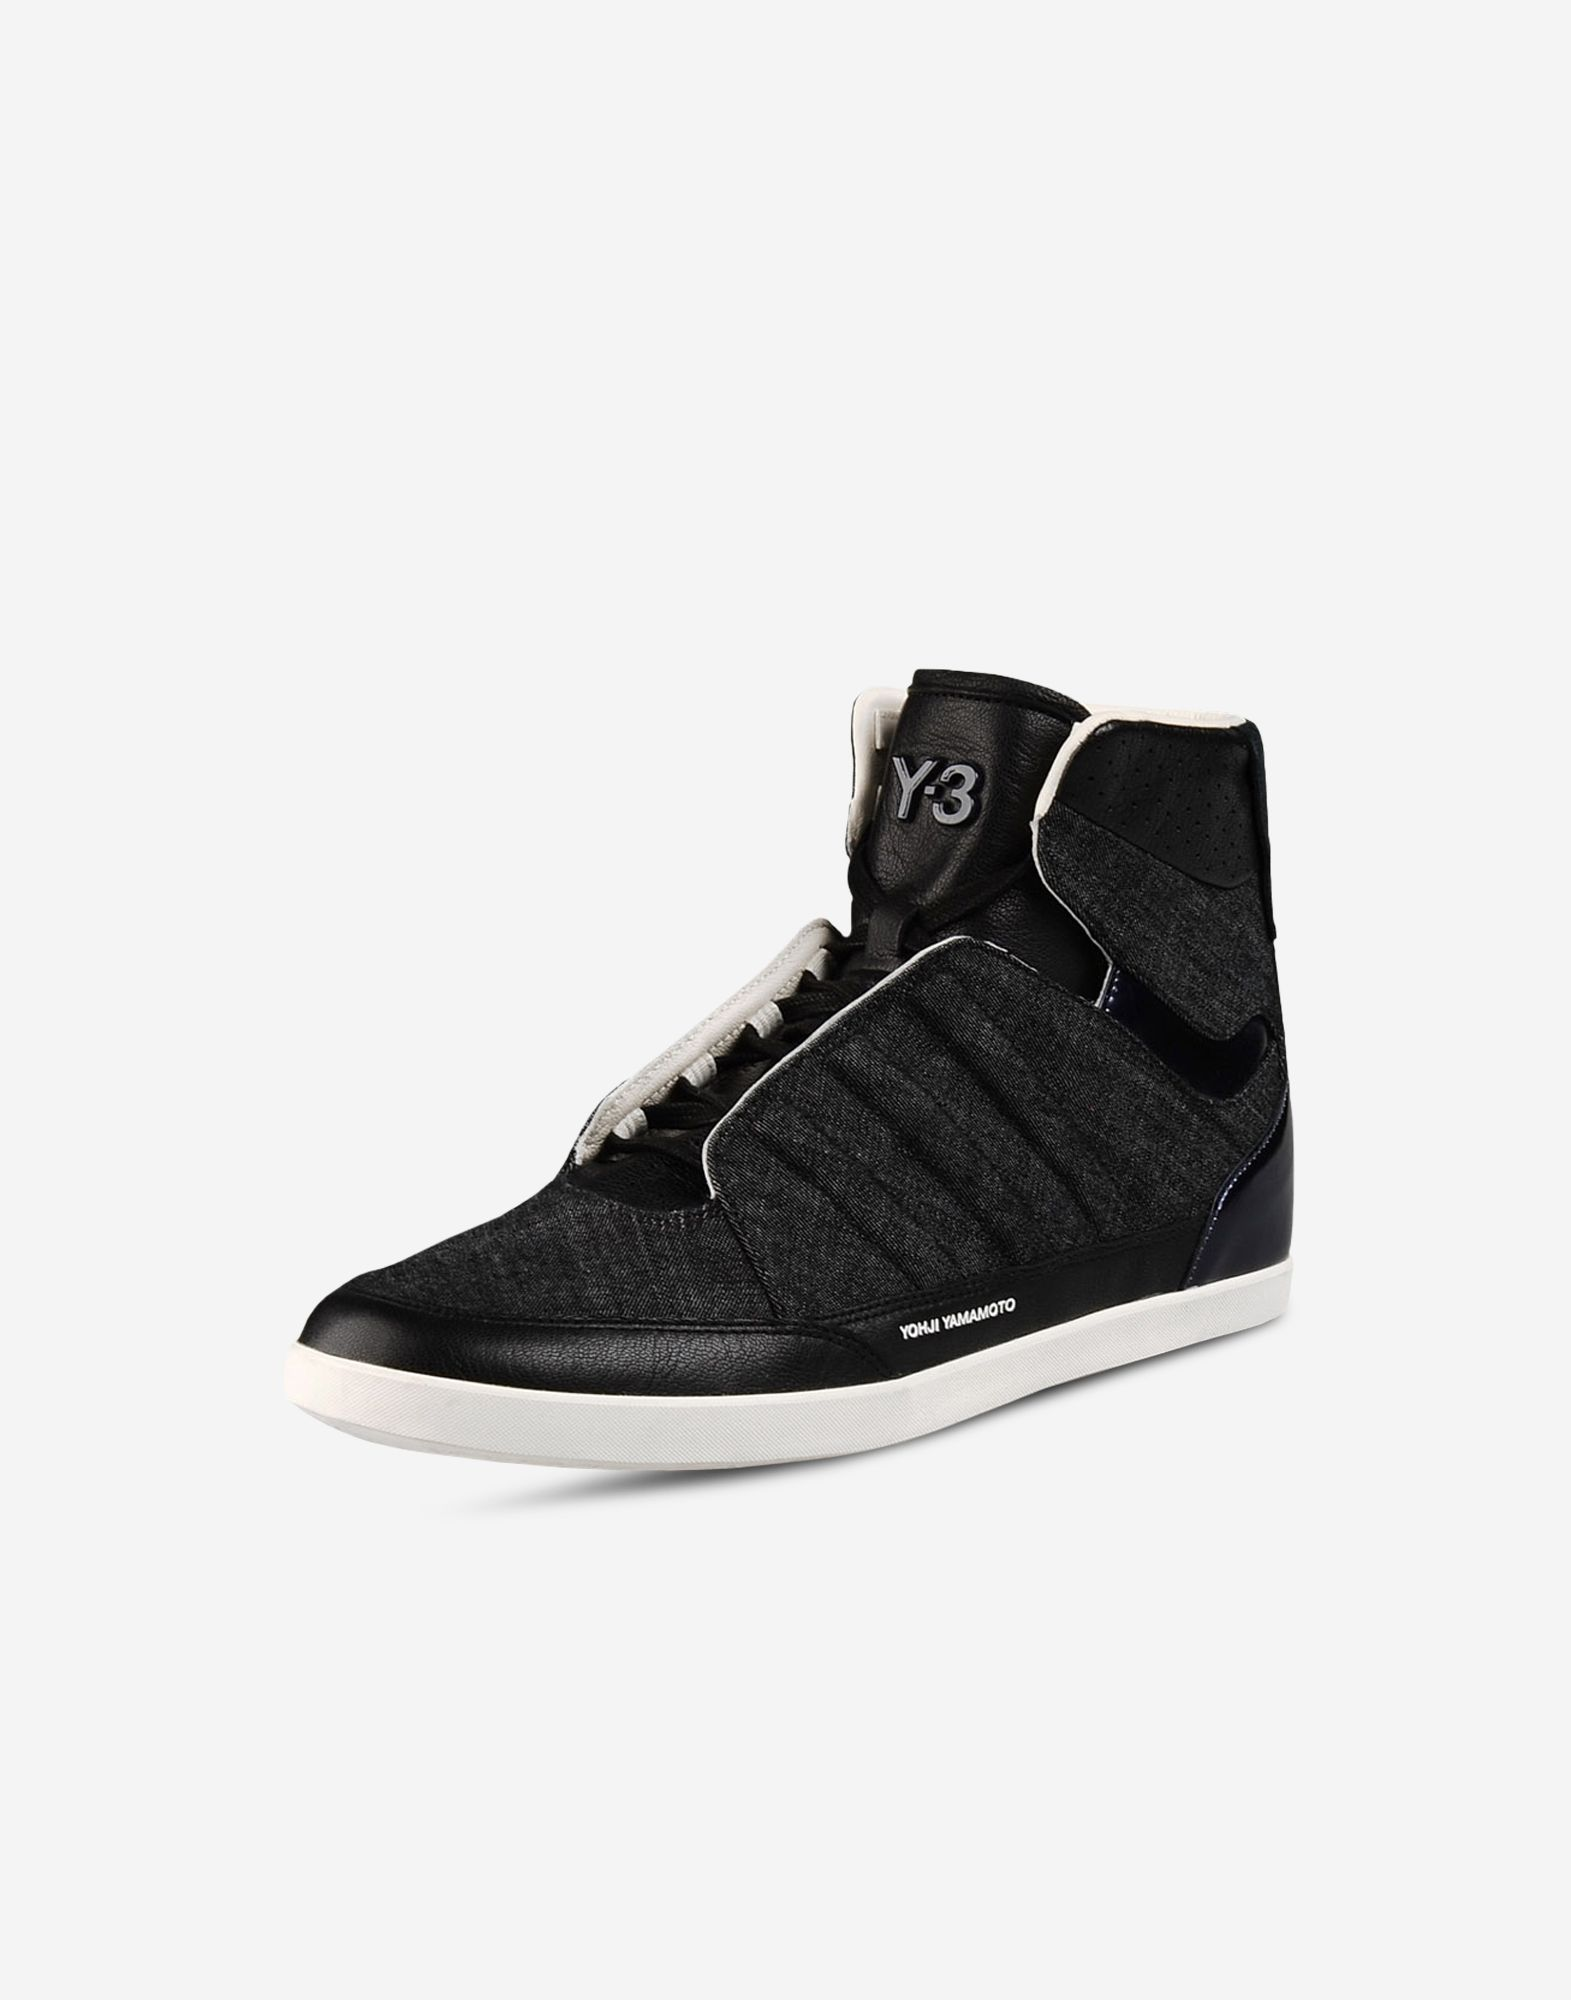 Y-3 Y-3 Honja High High-top sneakers Man r